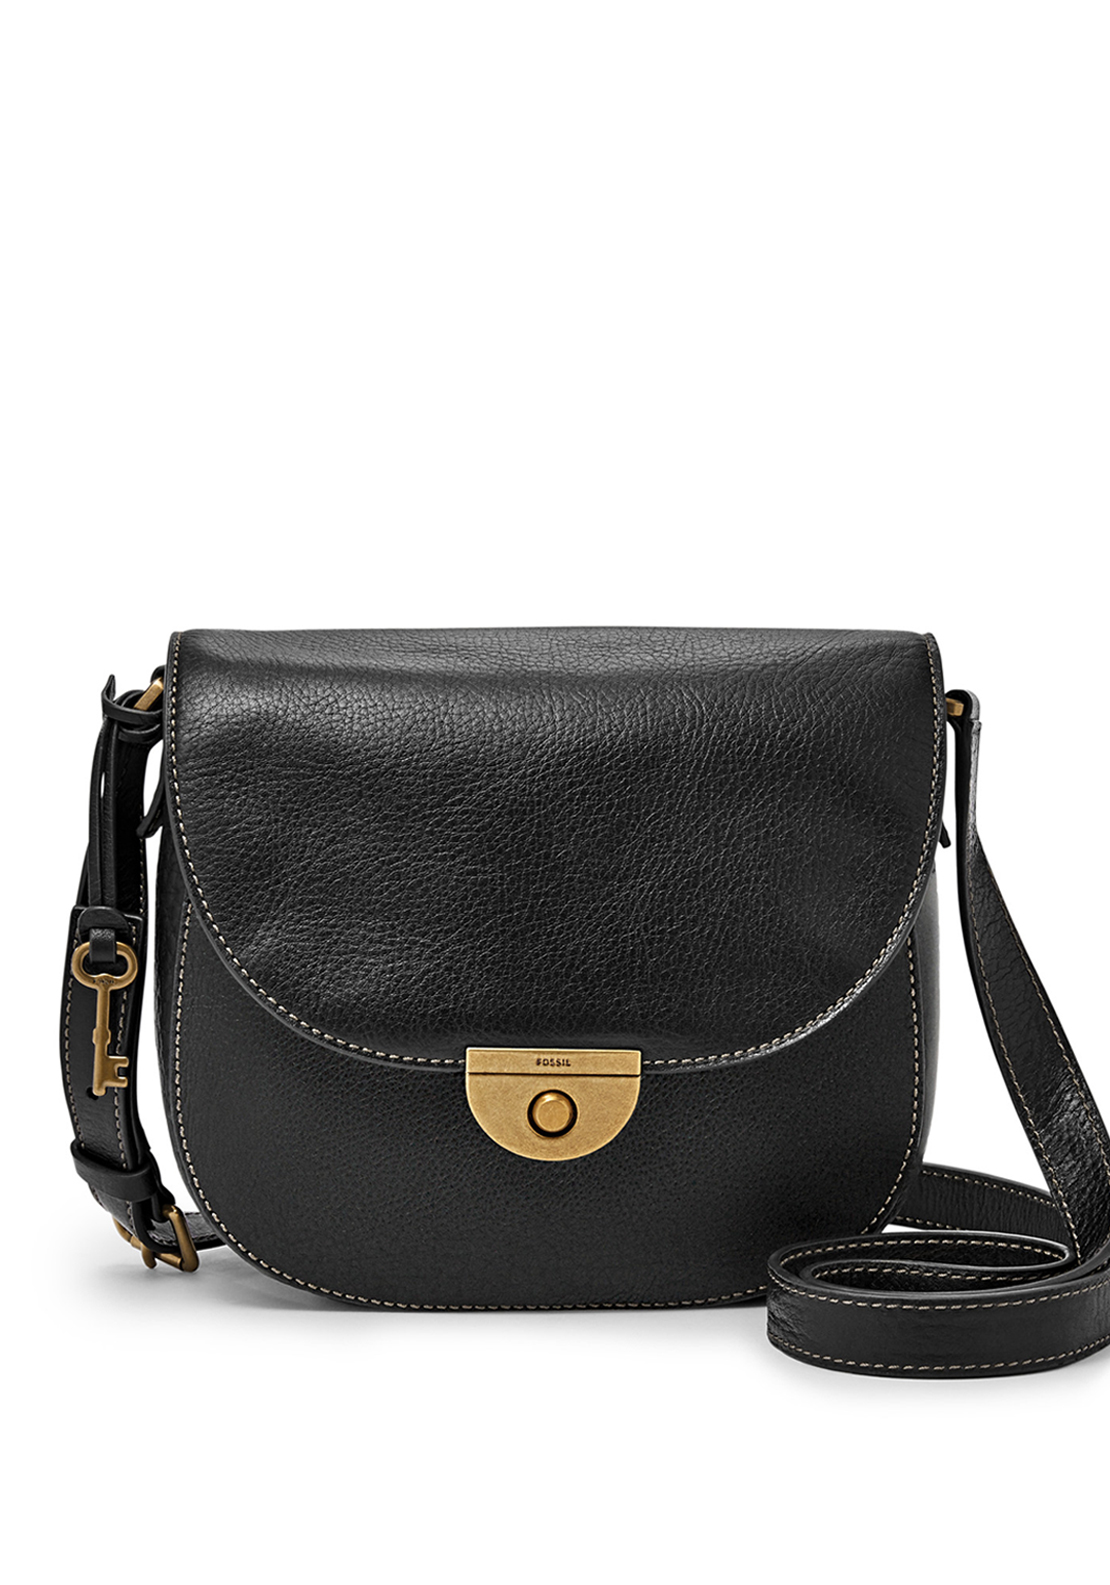 Fossil Emi Leather Saddle Crossbody Bag, Black